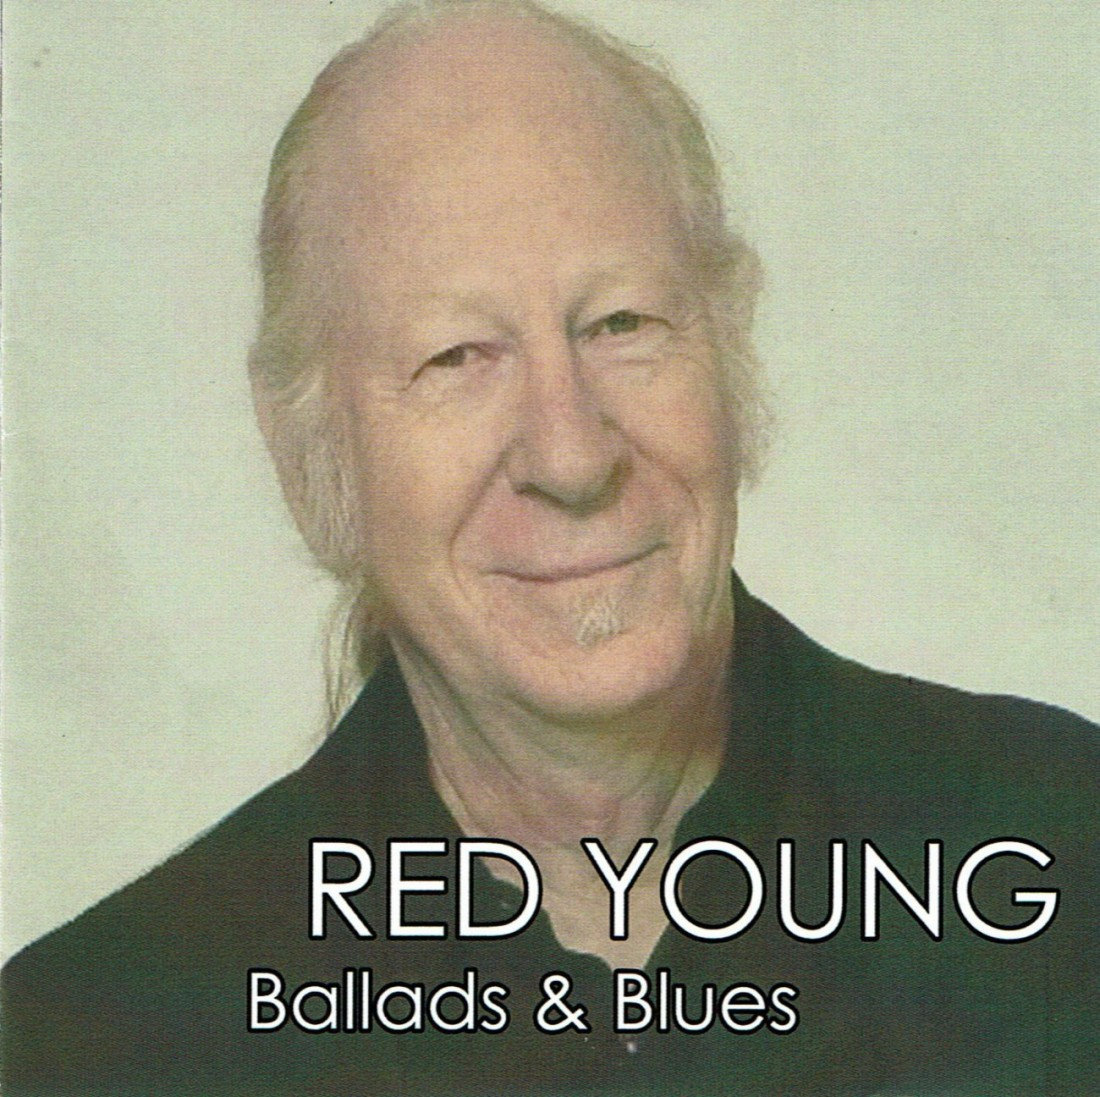 CD / MP3 Red Young / Ballads & Blues